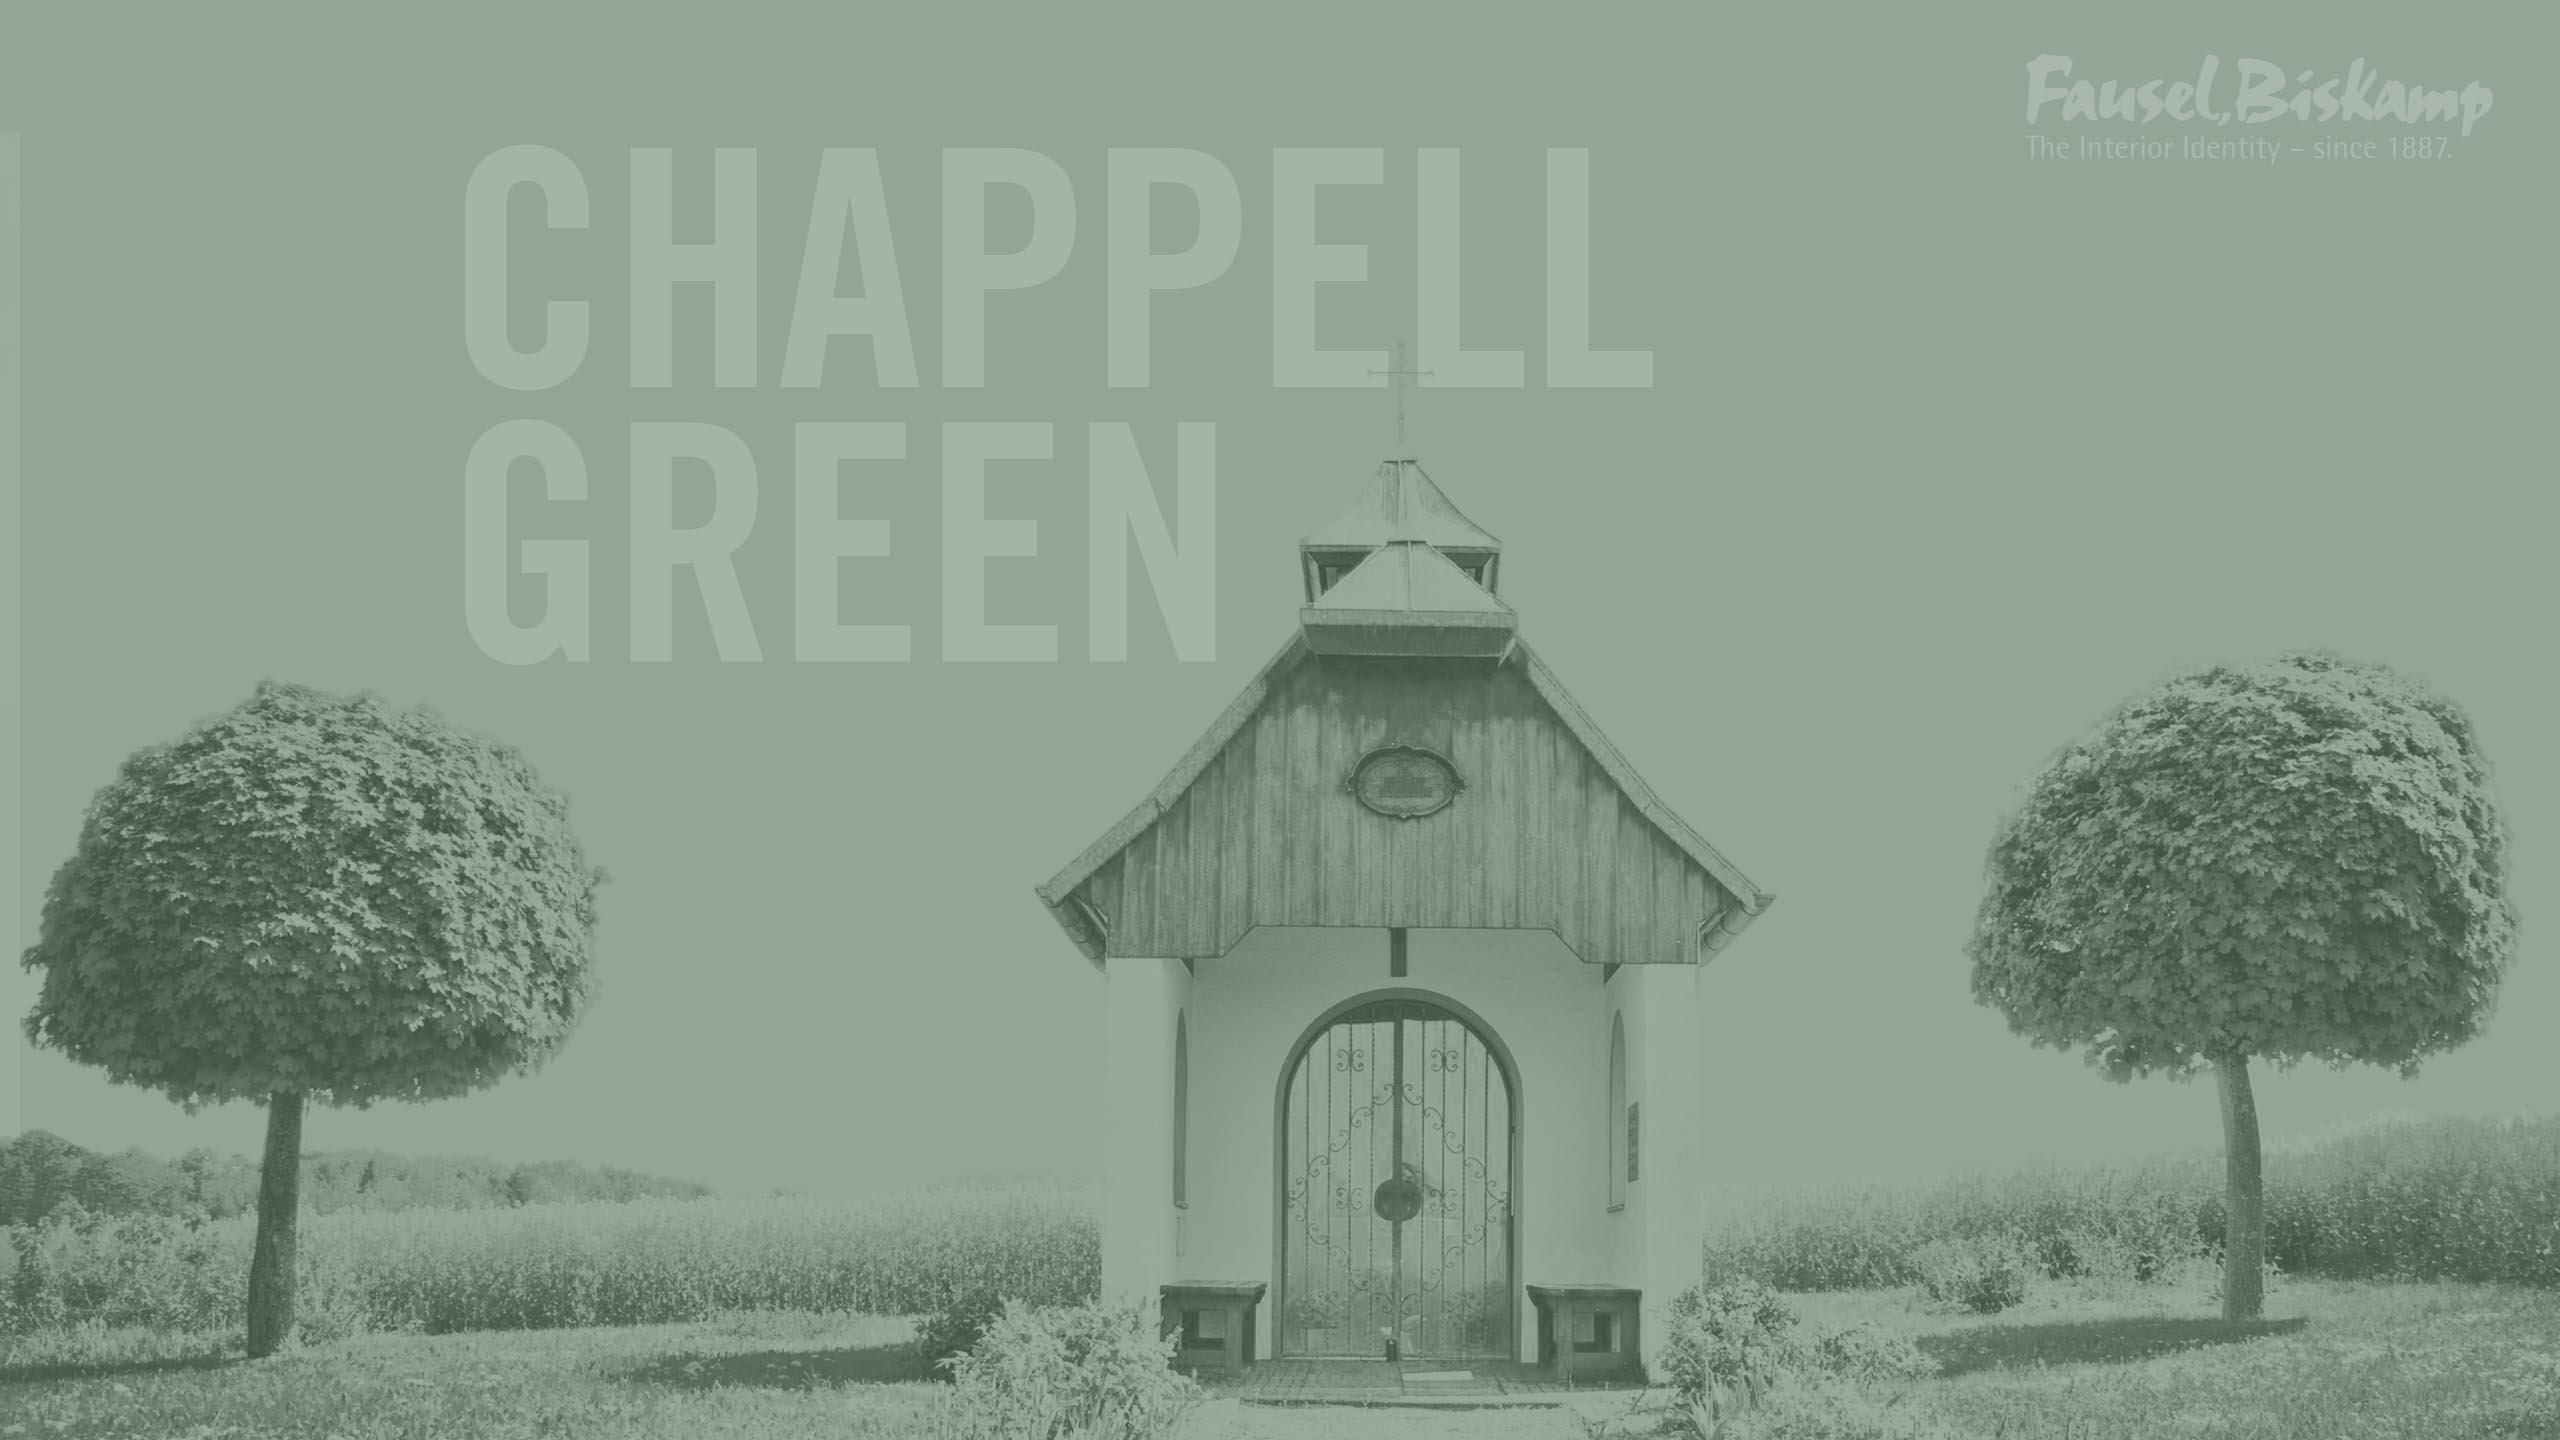 Chappell Green (No. 234)